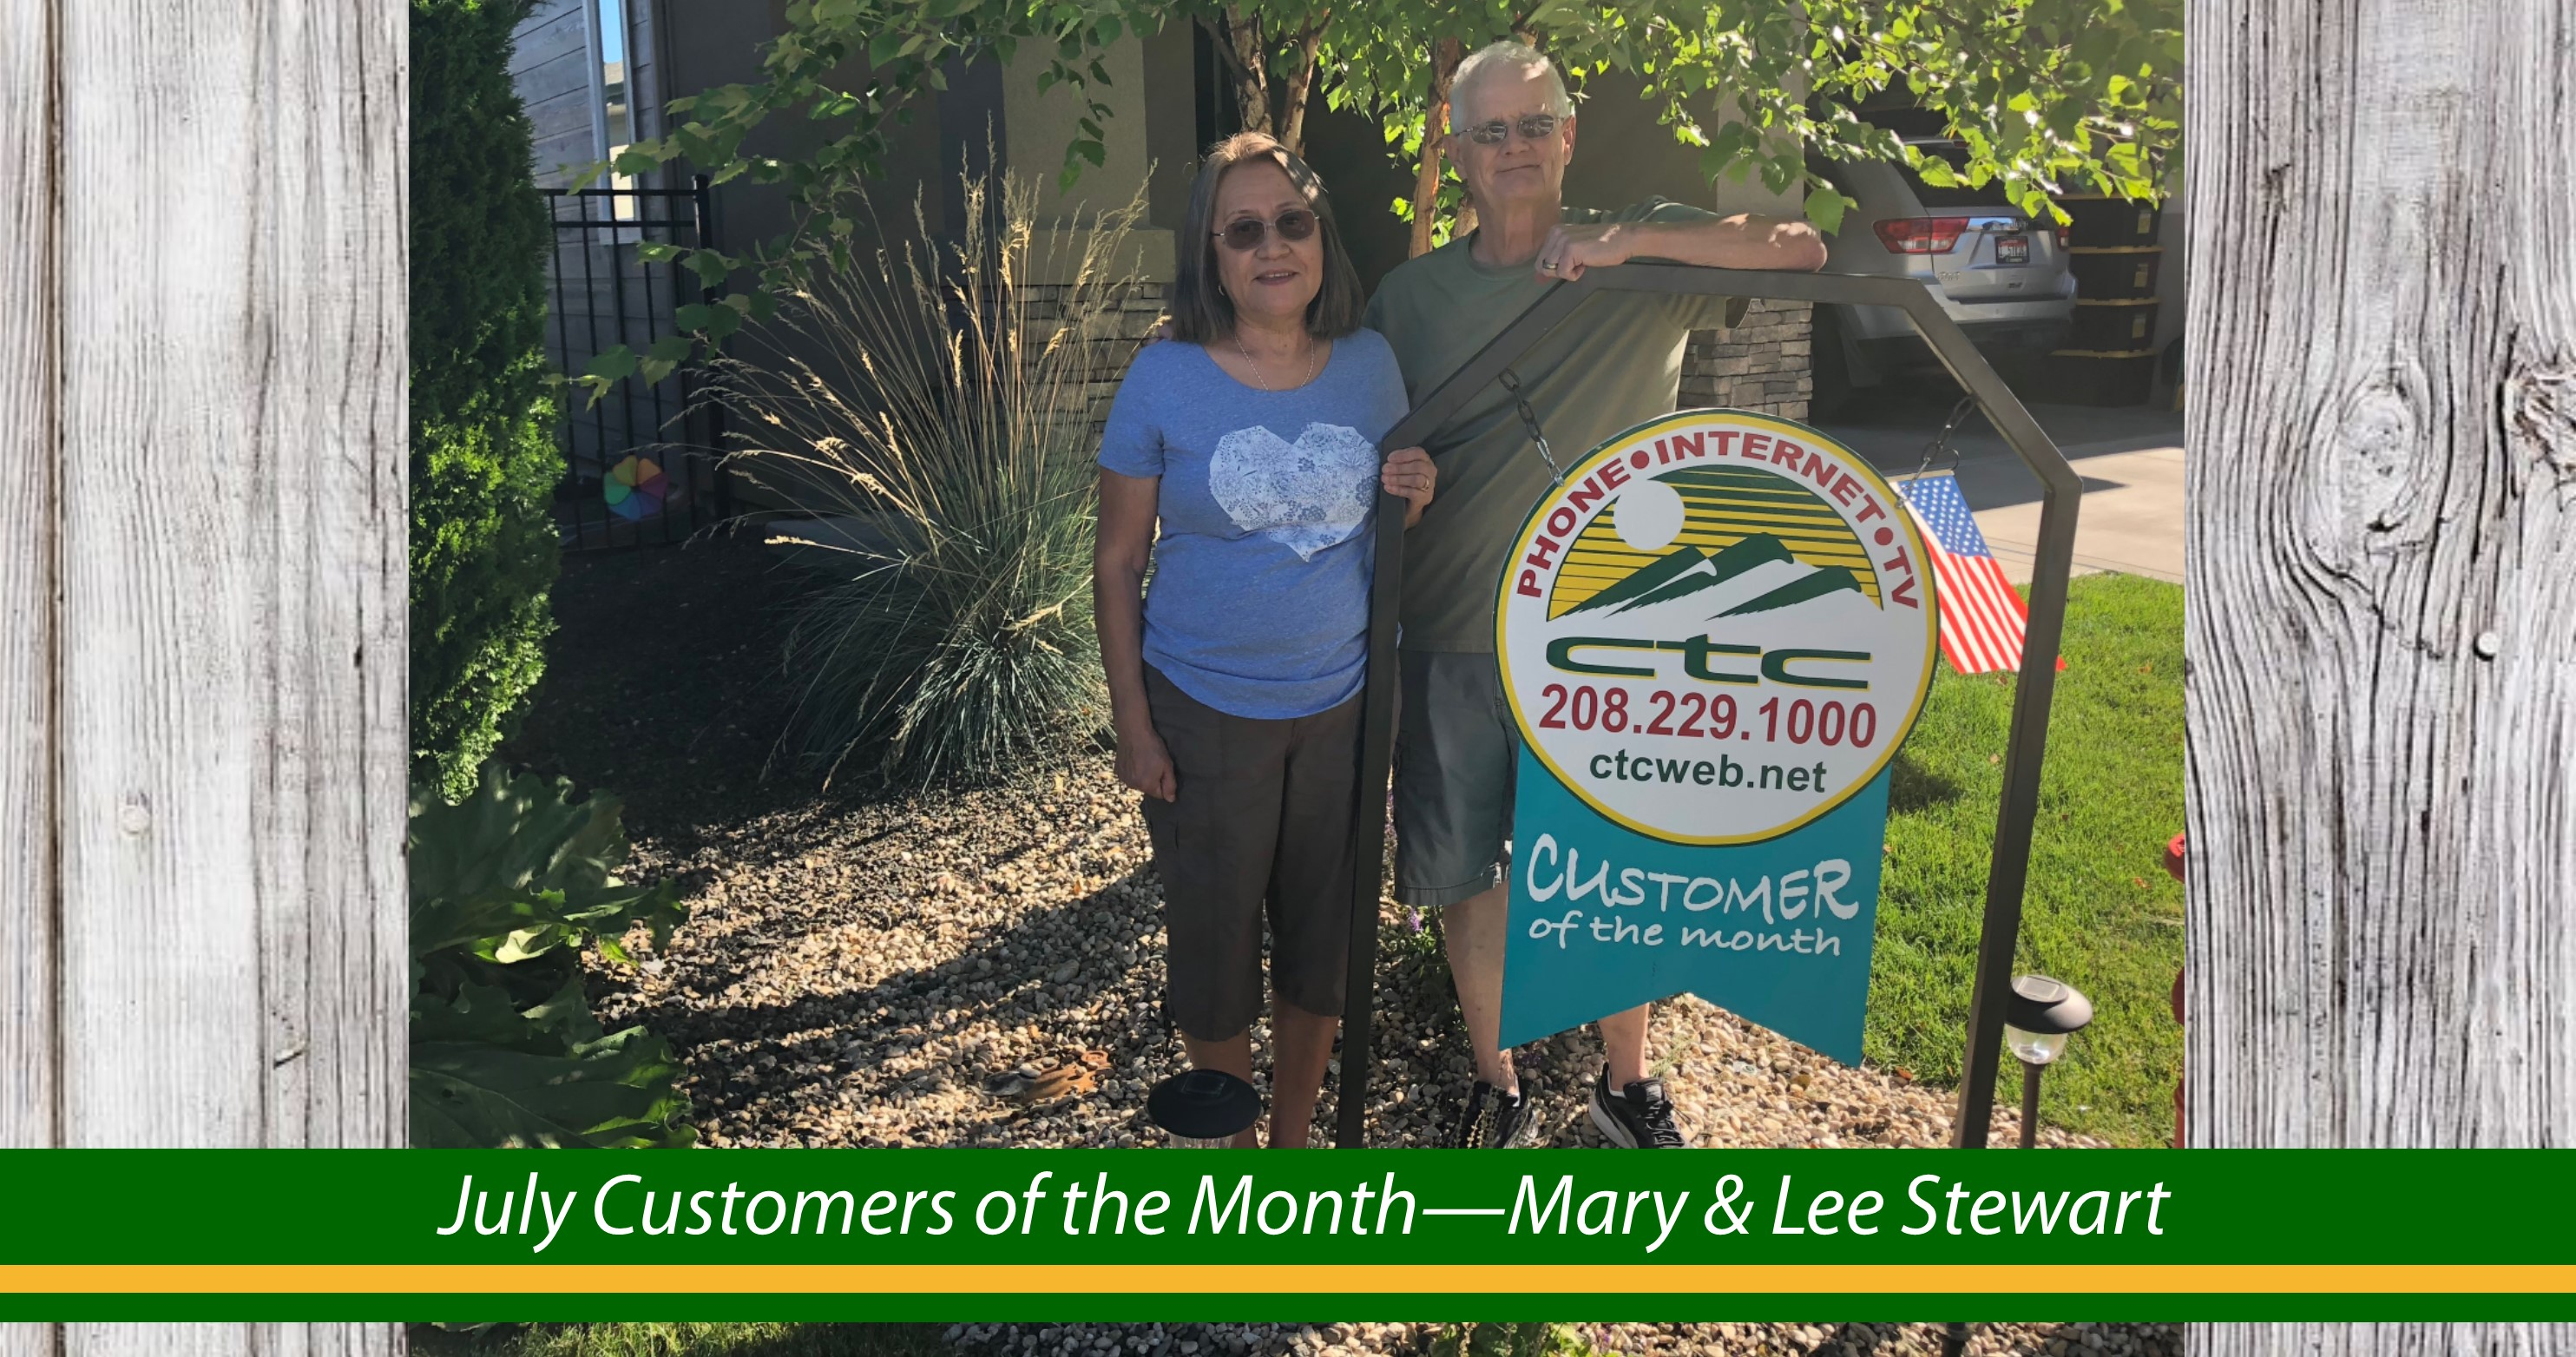 Customer of the Month July